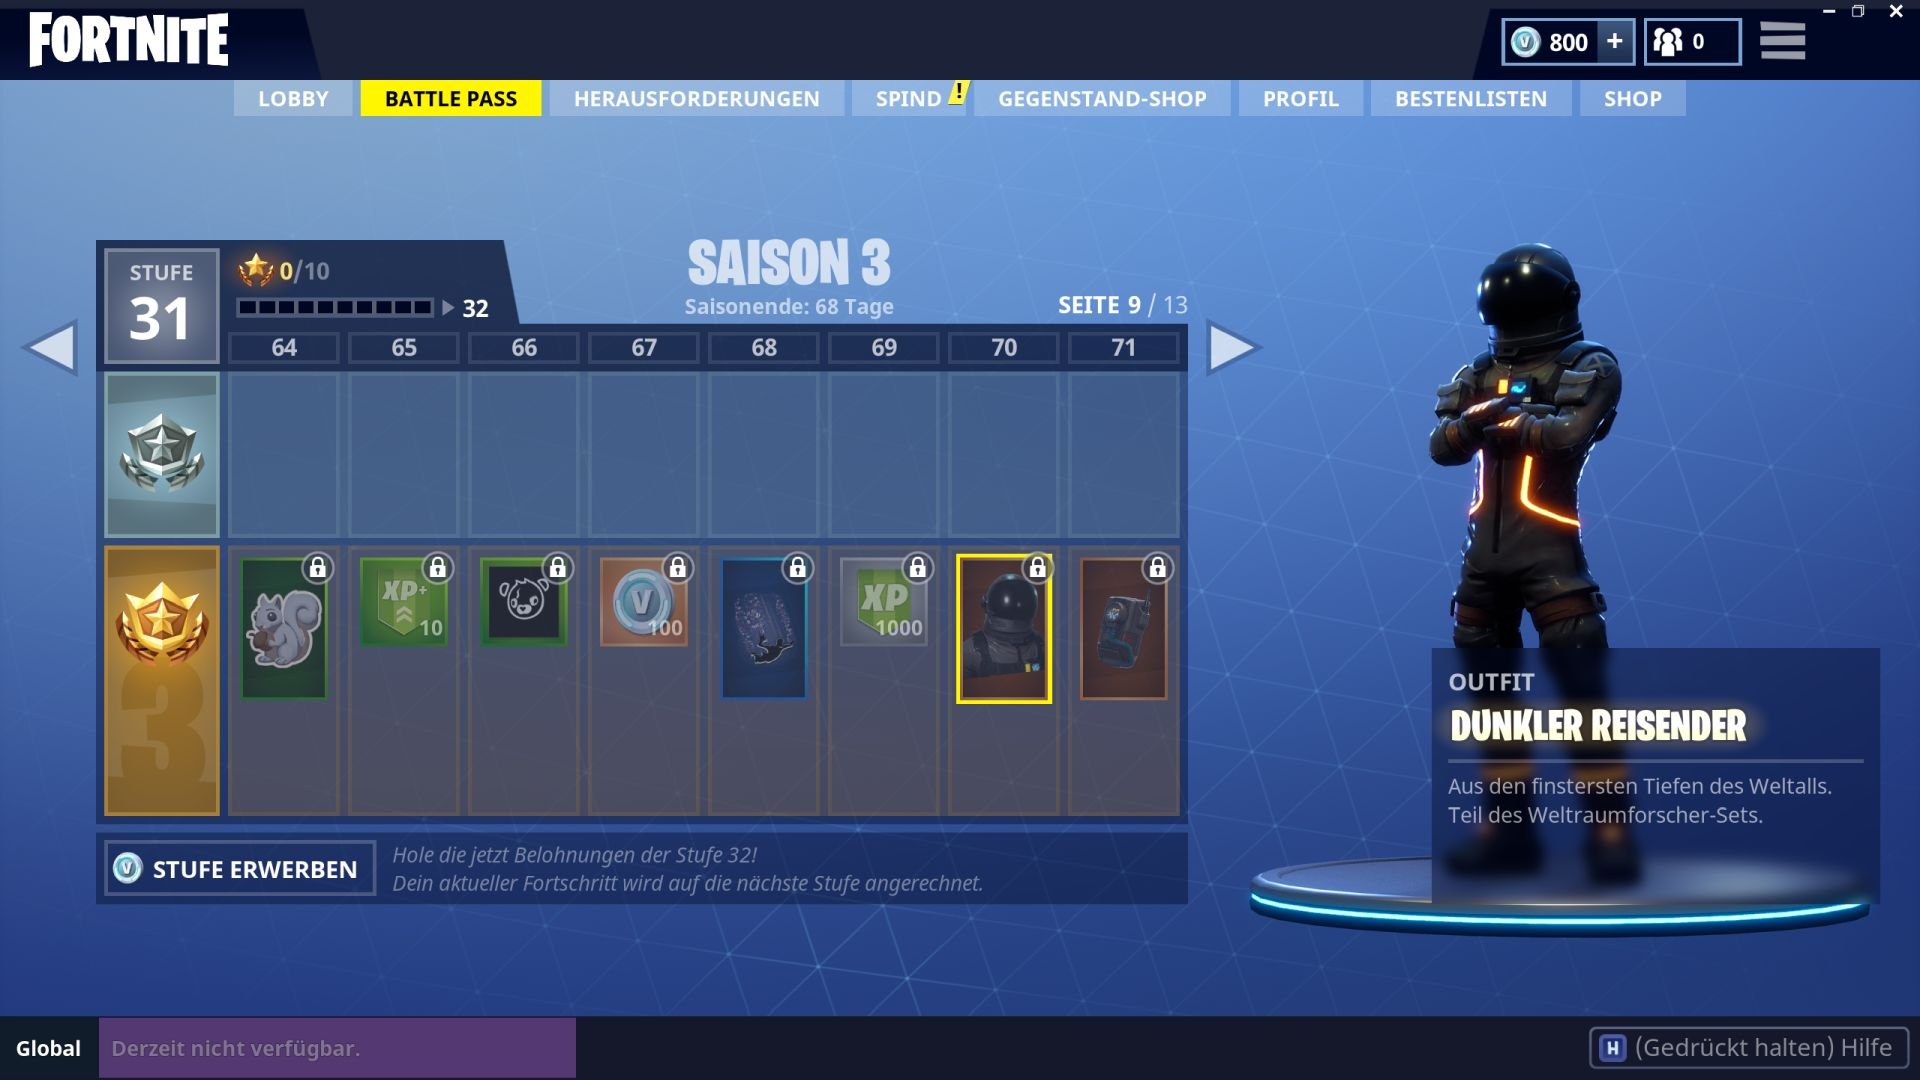 Fortnite-Battle-Pass-Season-03-Screenshots-17